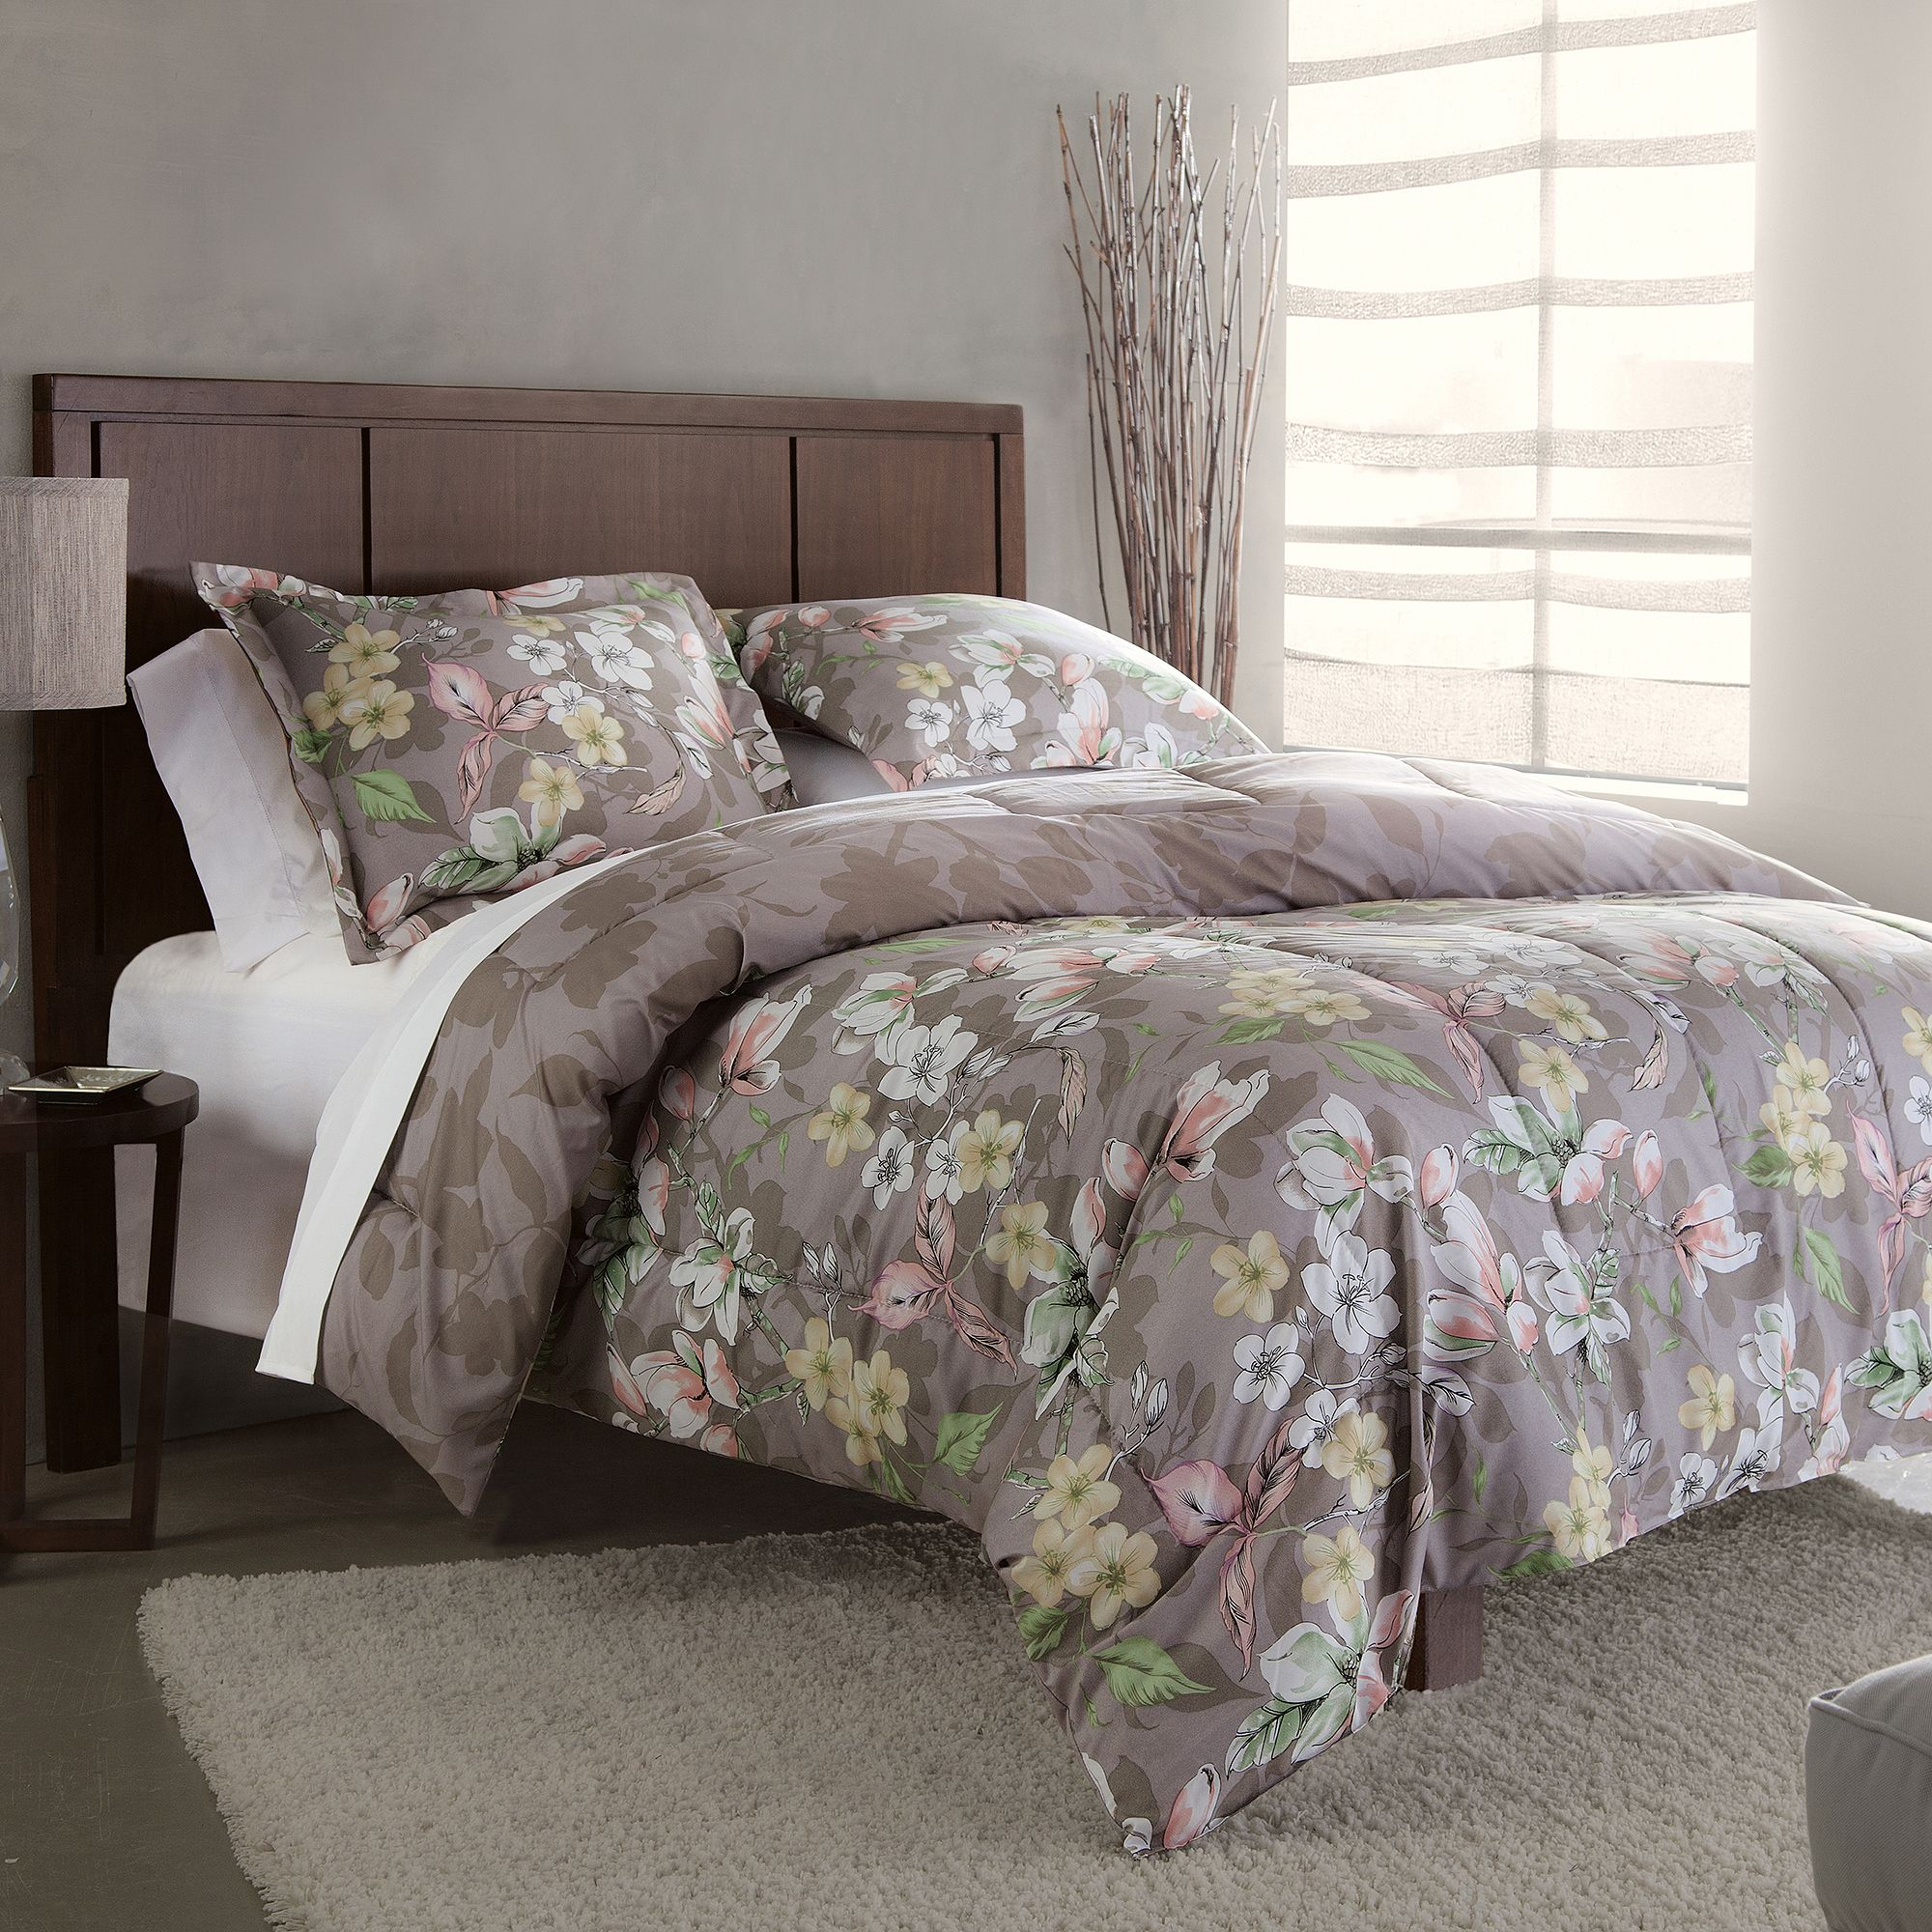 Divatex Home Fashions Natalie Bedding Comforter Set, Gray